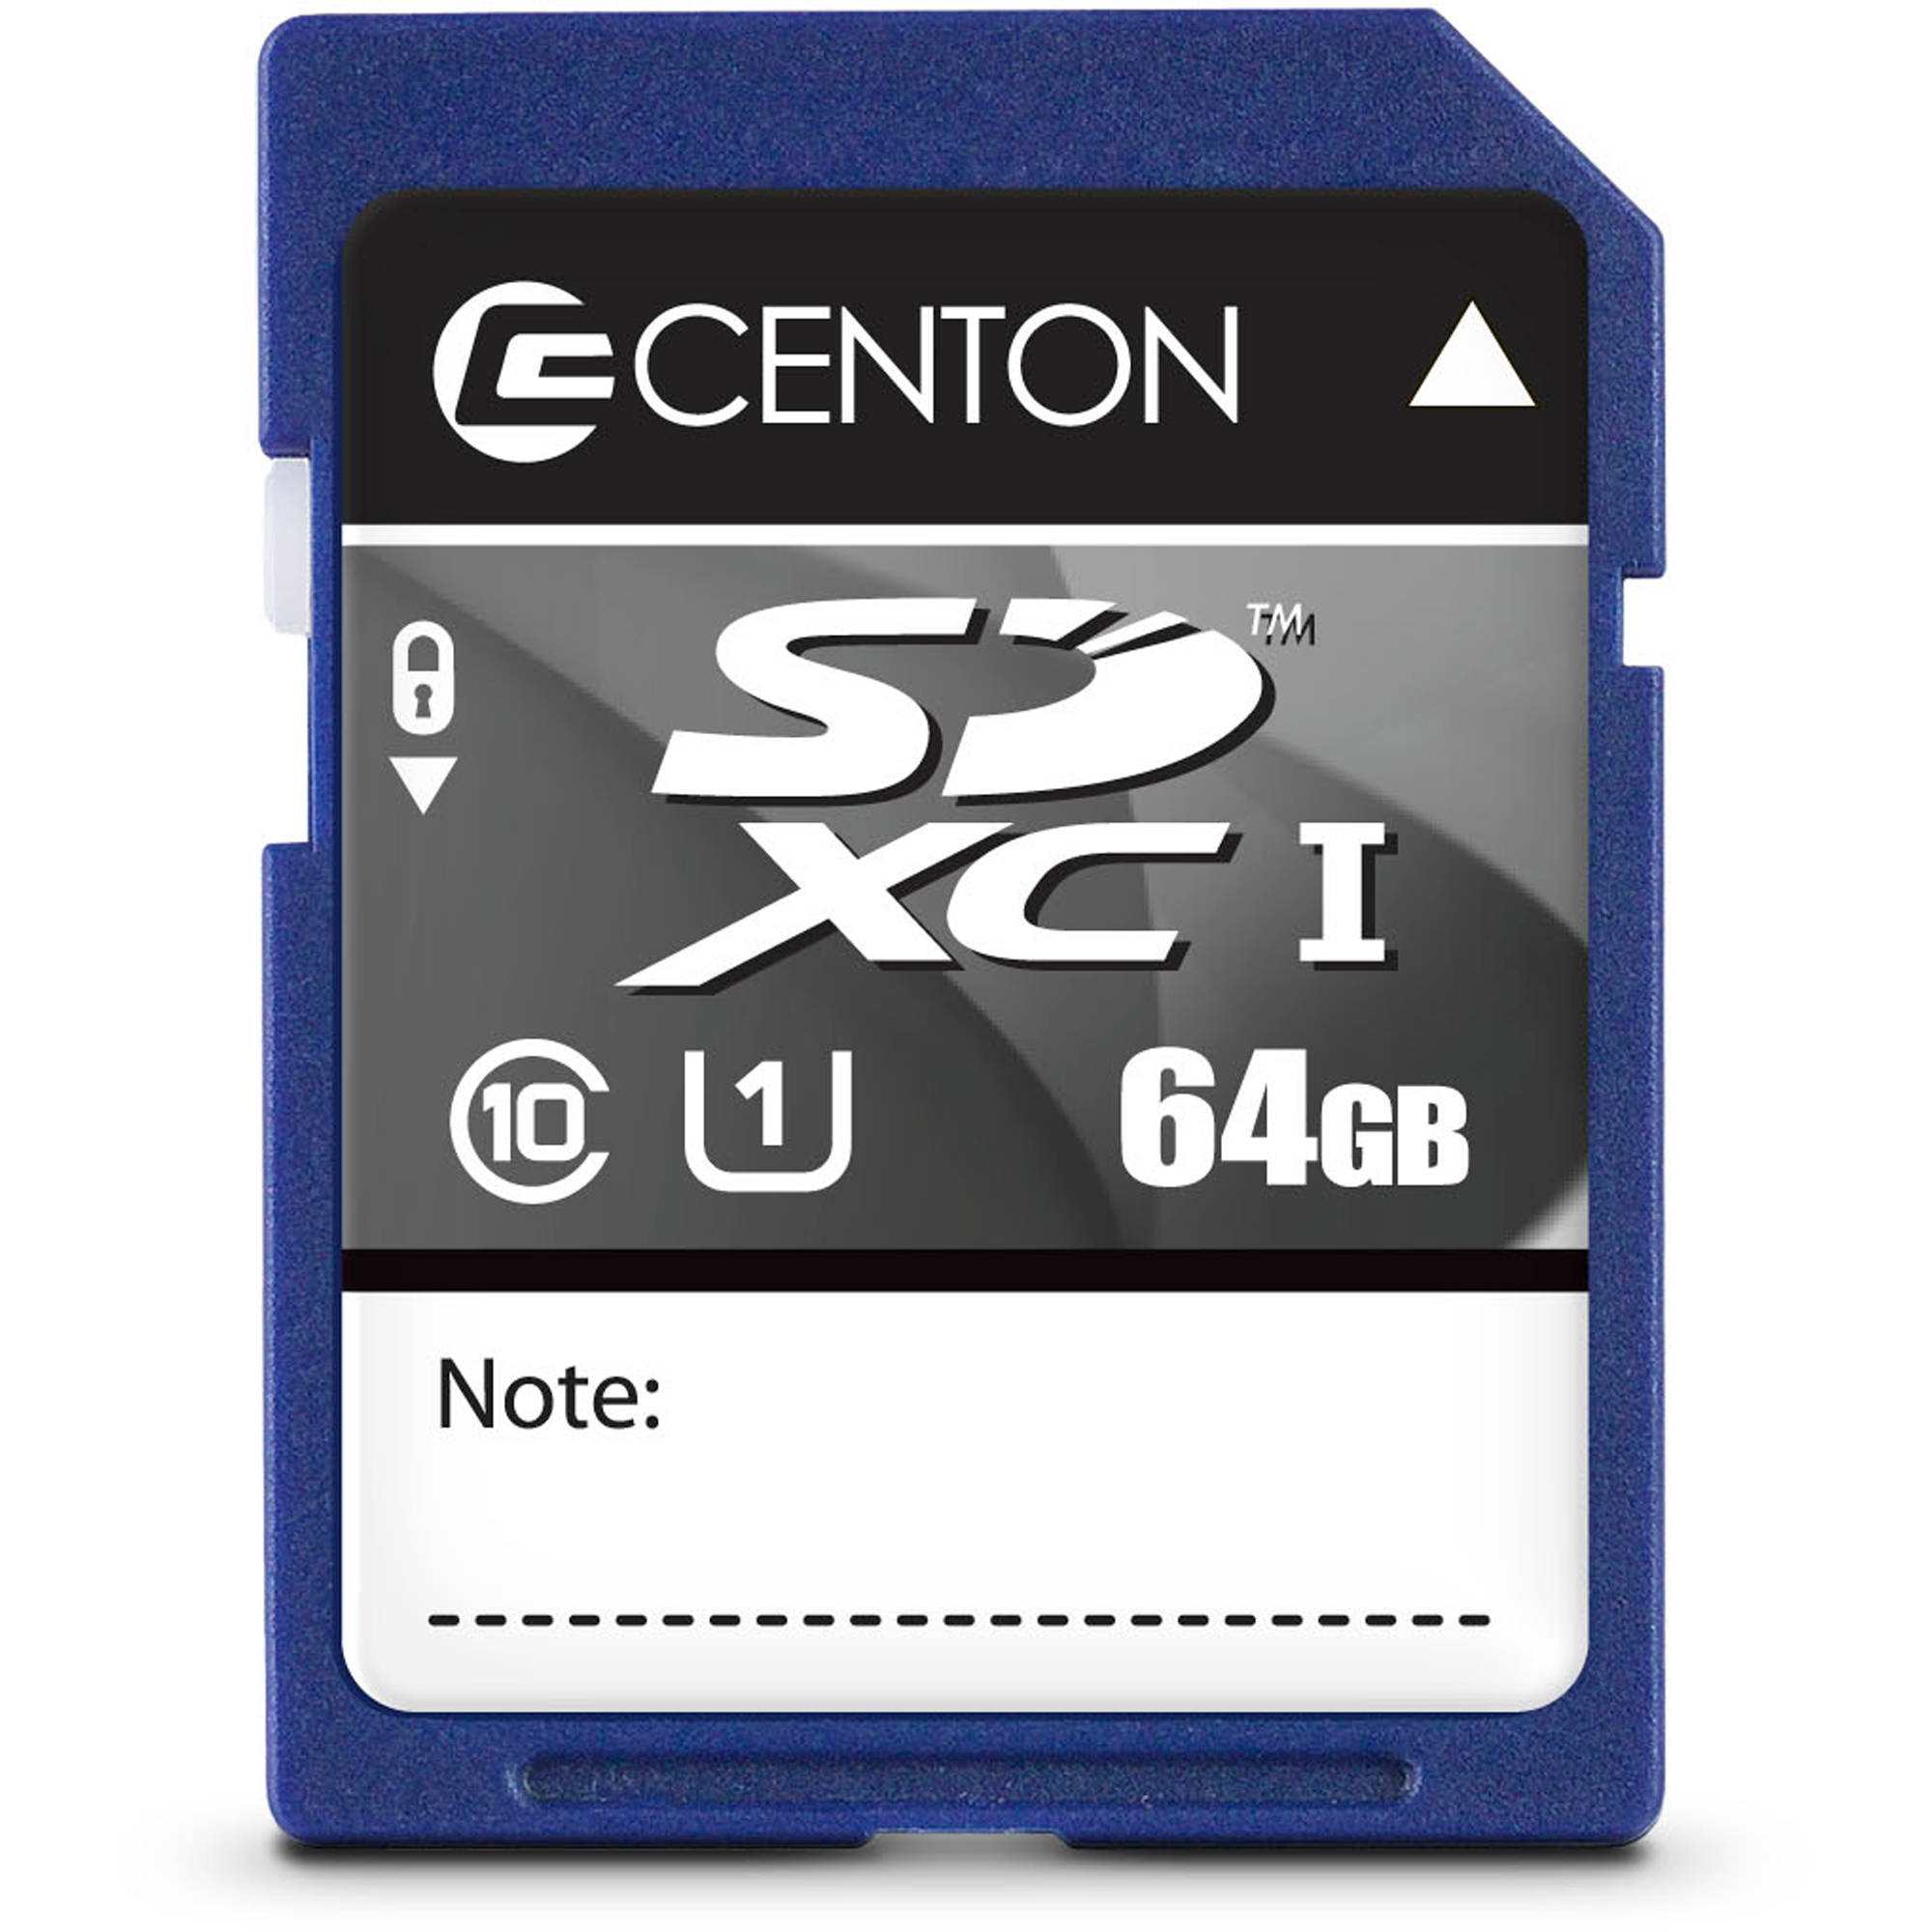 Centon 64GB SD Card